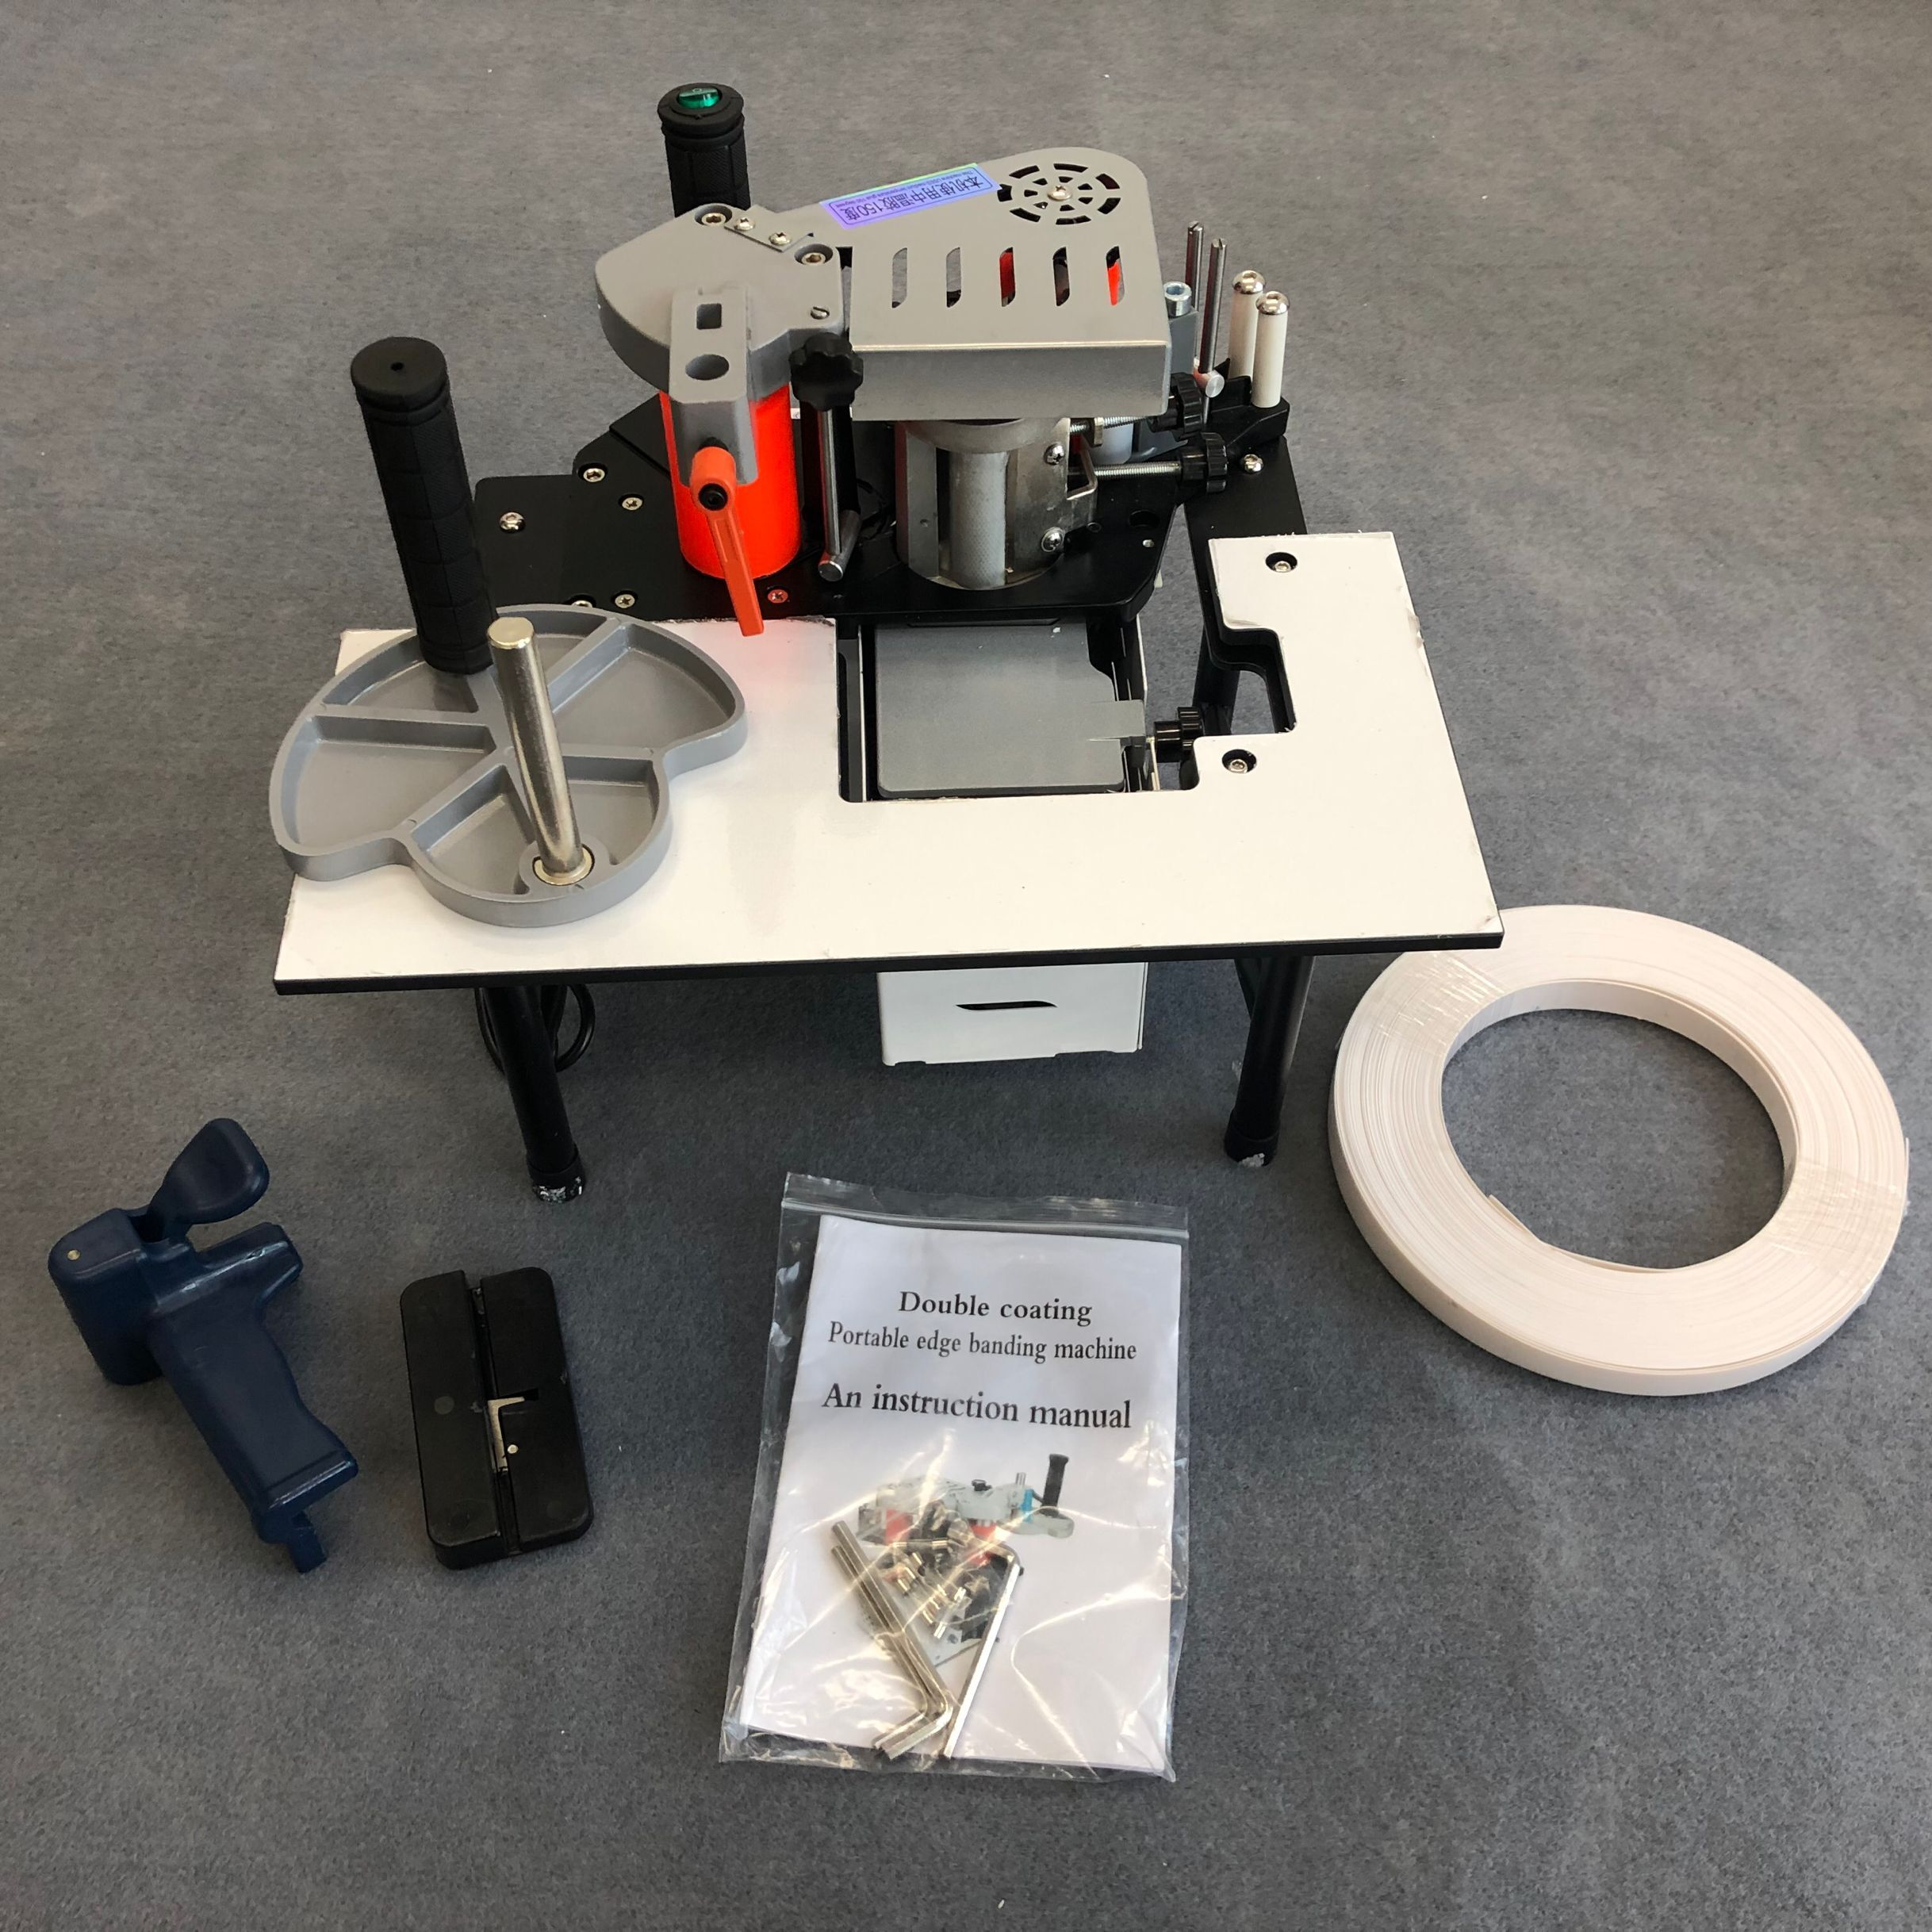 Woodworking Edge Banding Machine With Fixed Length, Trimming And End Cutting Functions With Linear And Curved Rotation